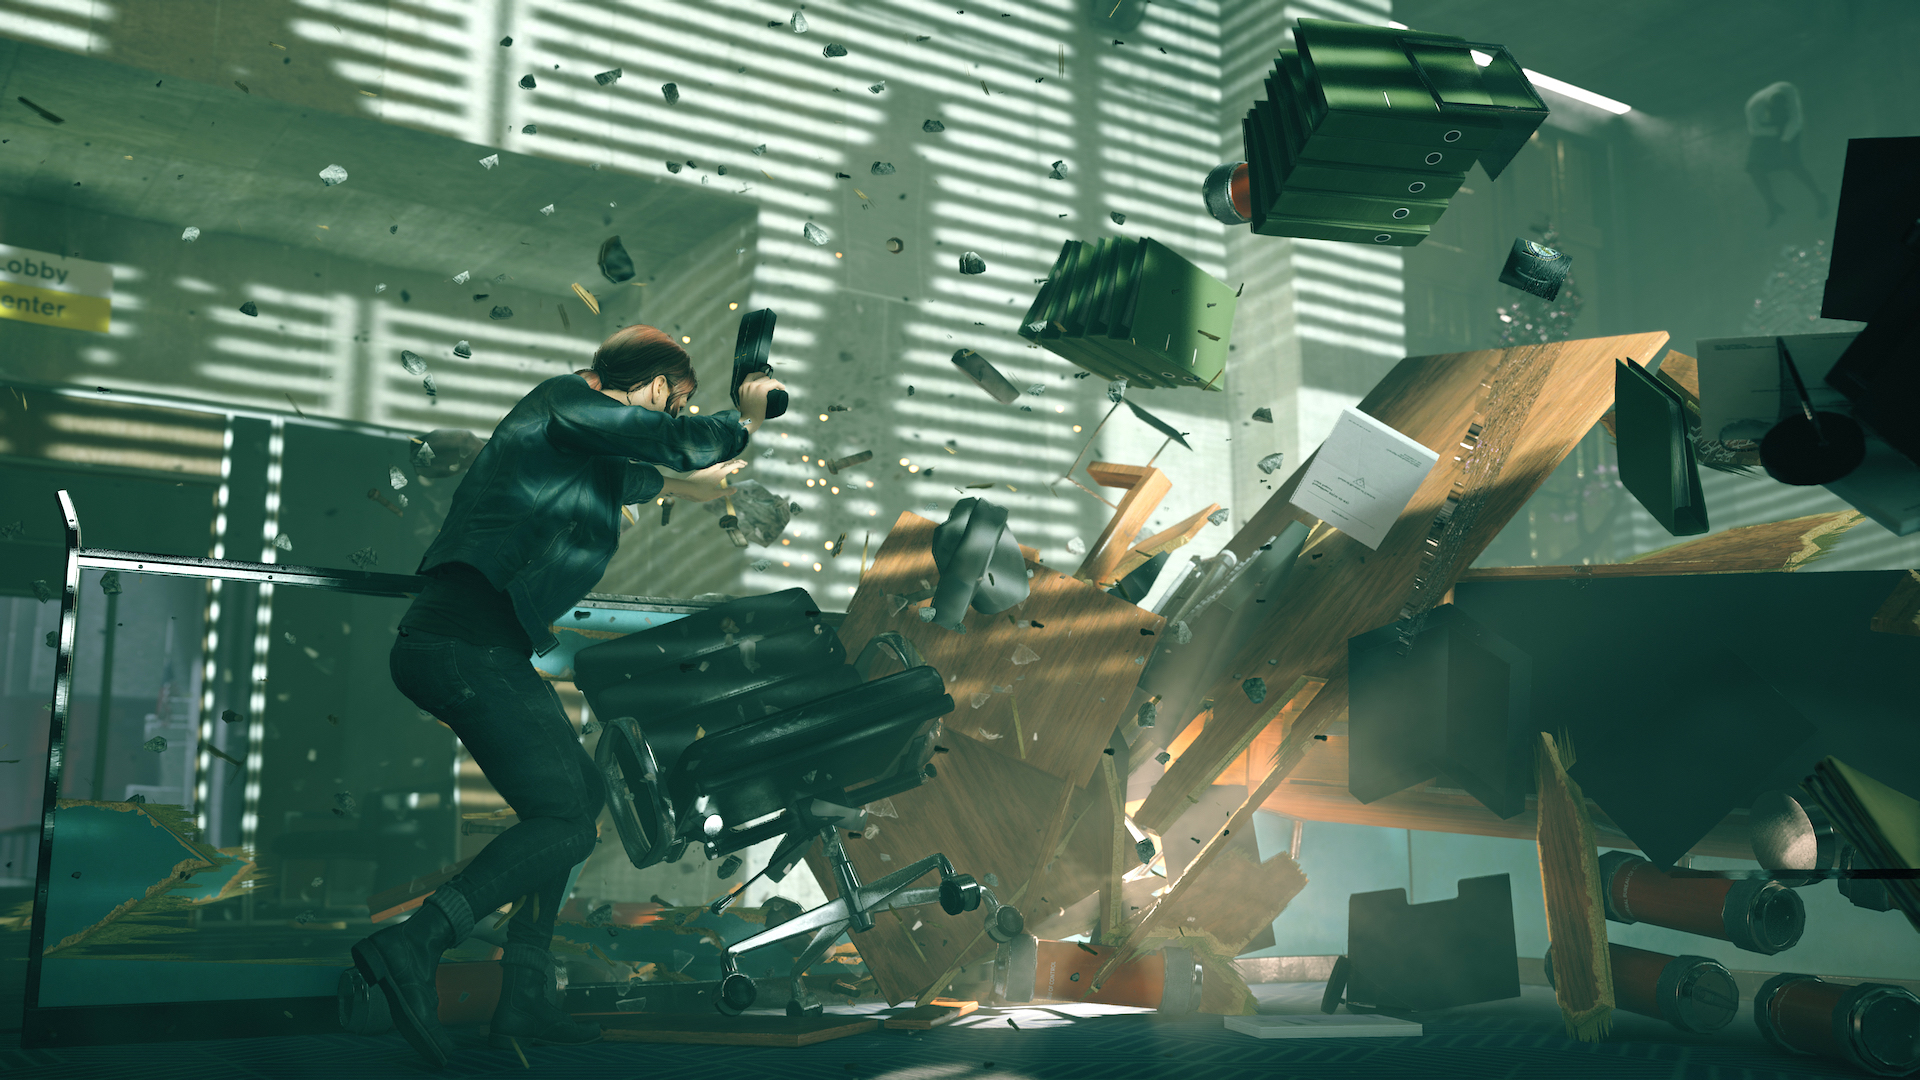 - Bad day at the offce - 'Control' is a leap of faith for the team behind 'Alan Wake'